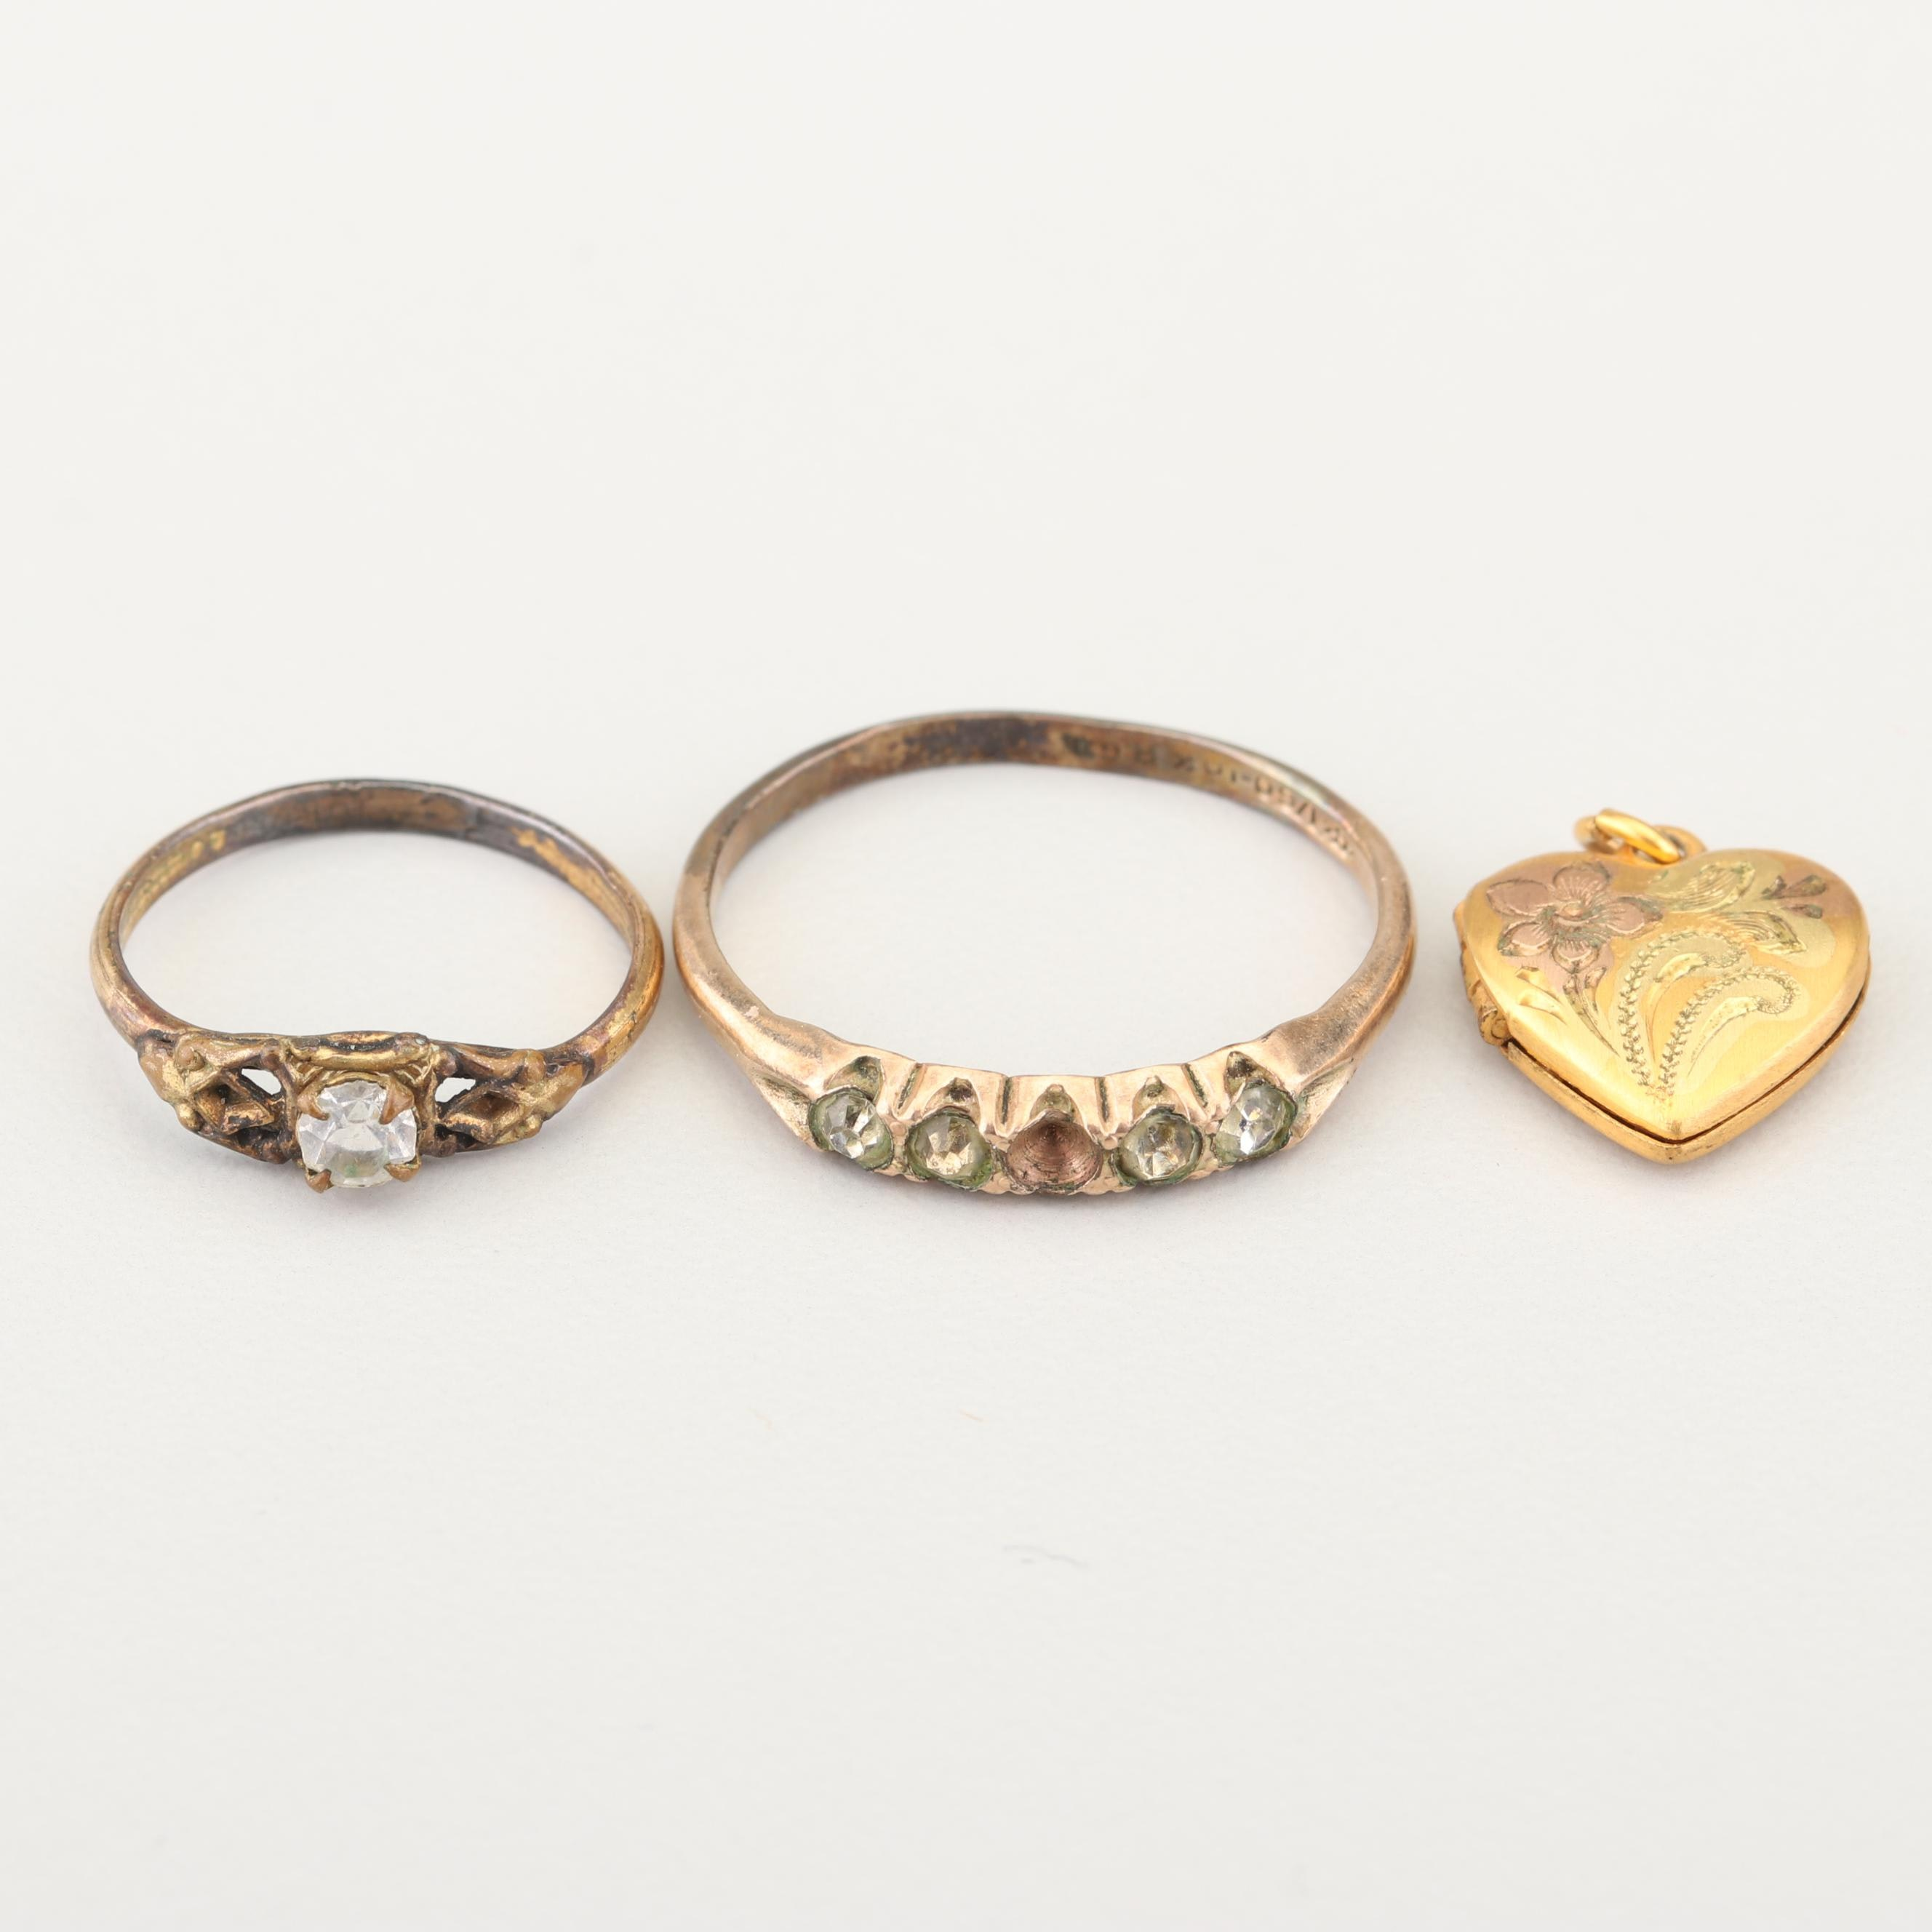 Gold Filled Rings and Heart Locket